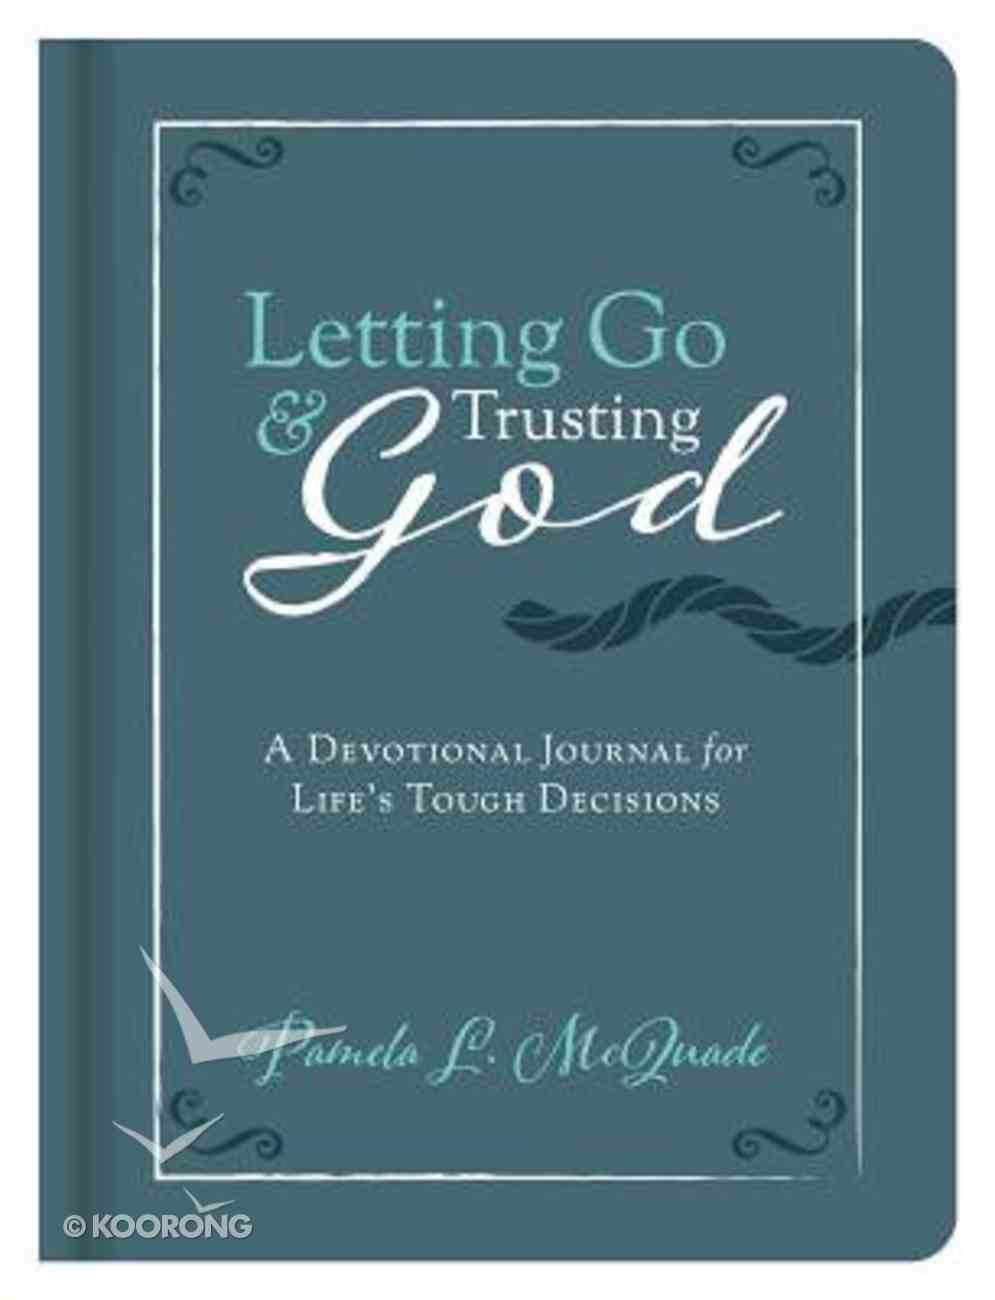 Letting Go and Trusting God: A Devotional Journal For Life's Tough Decisions Hardback